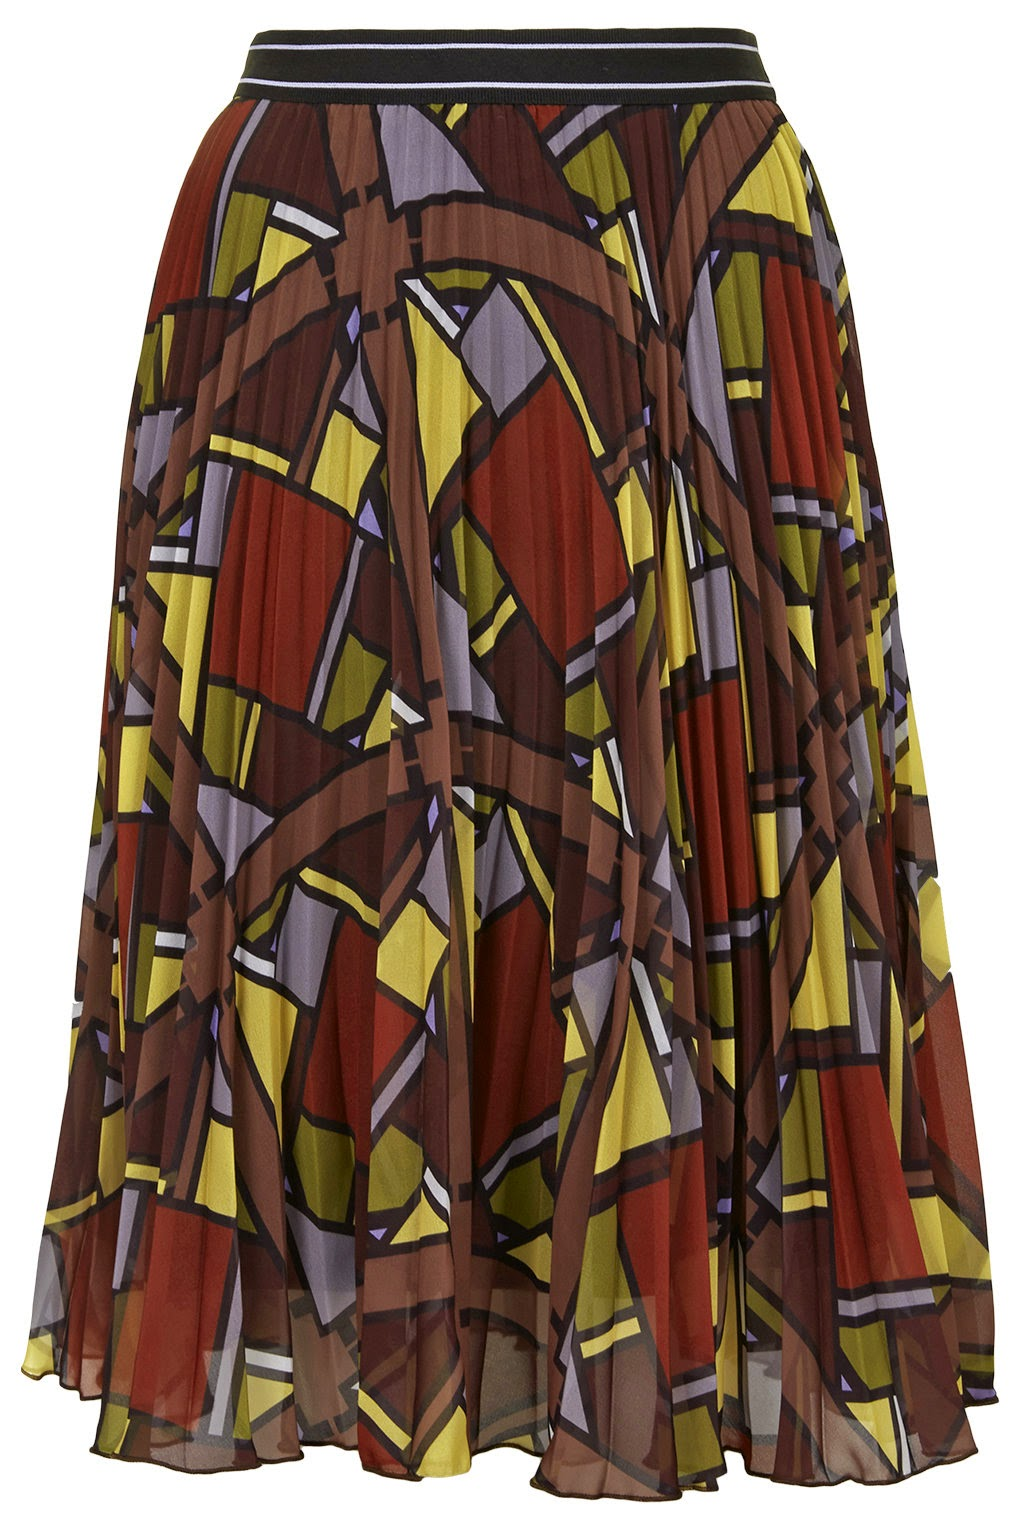 brown patterned midi skirt